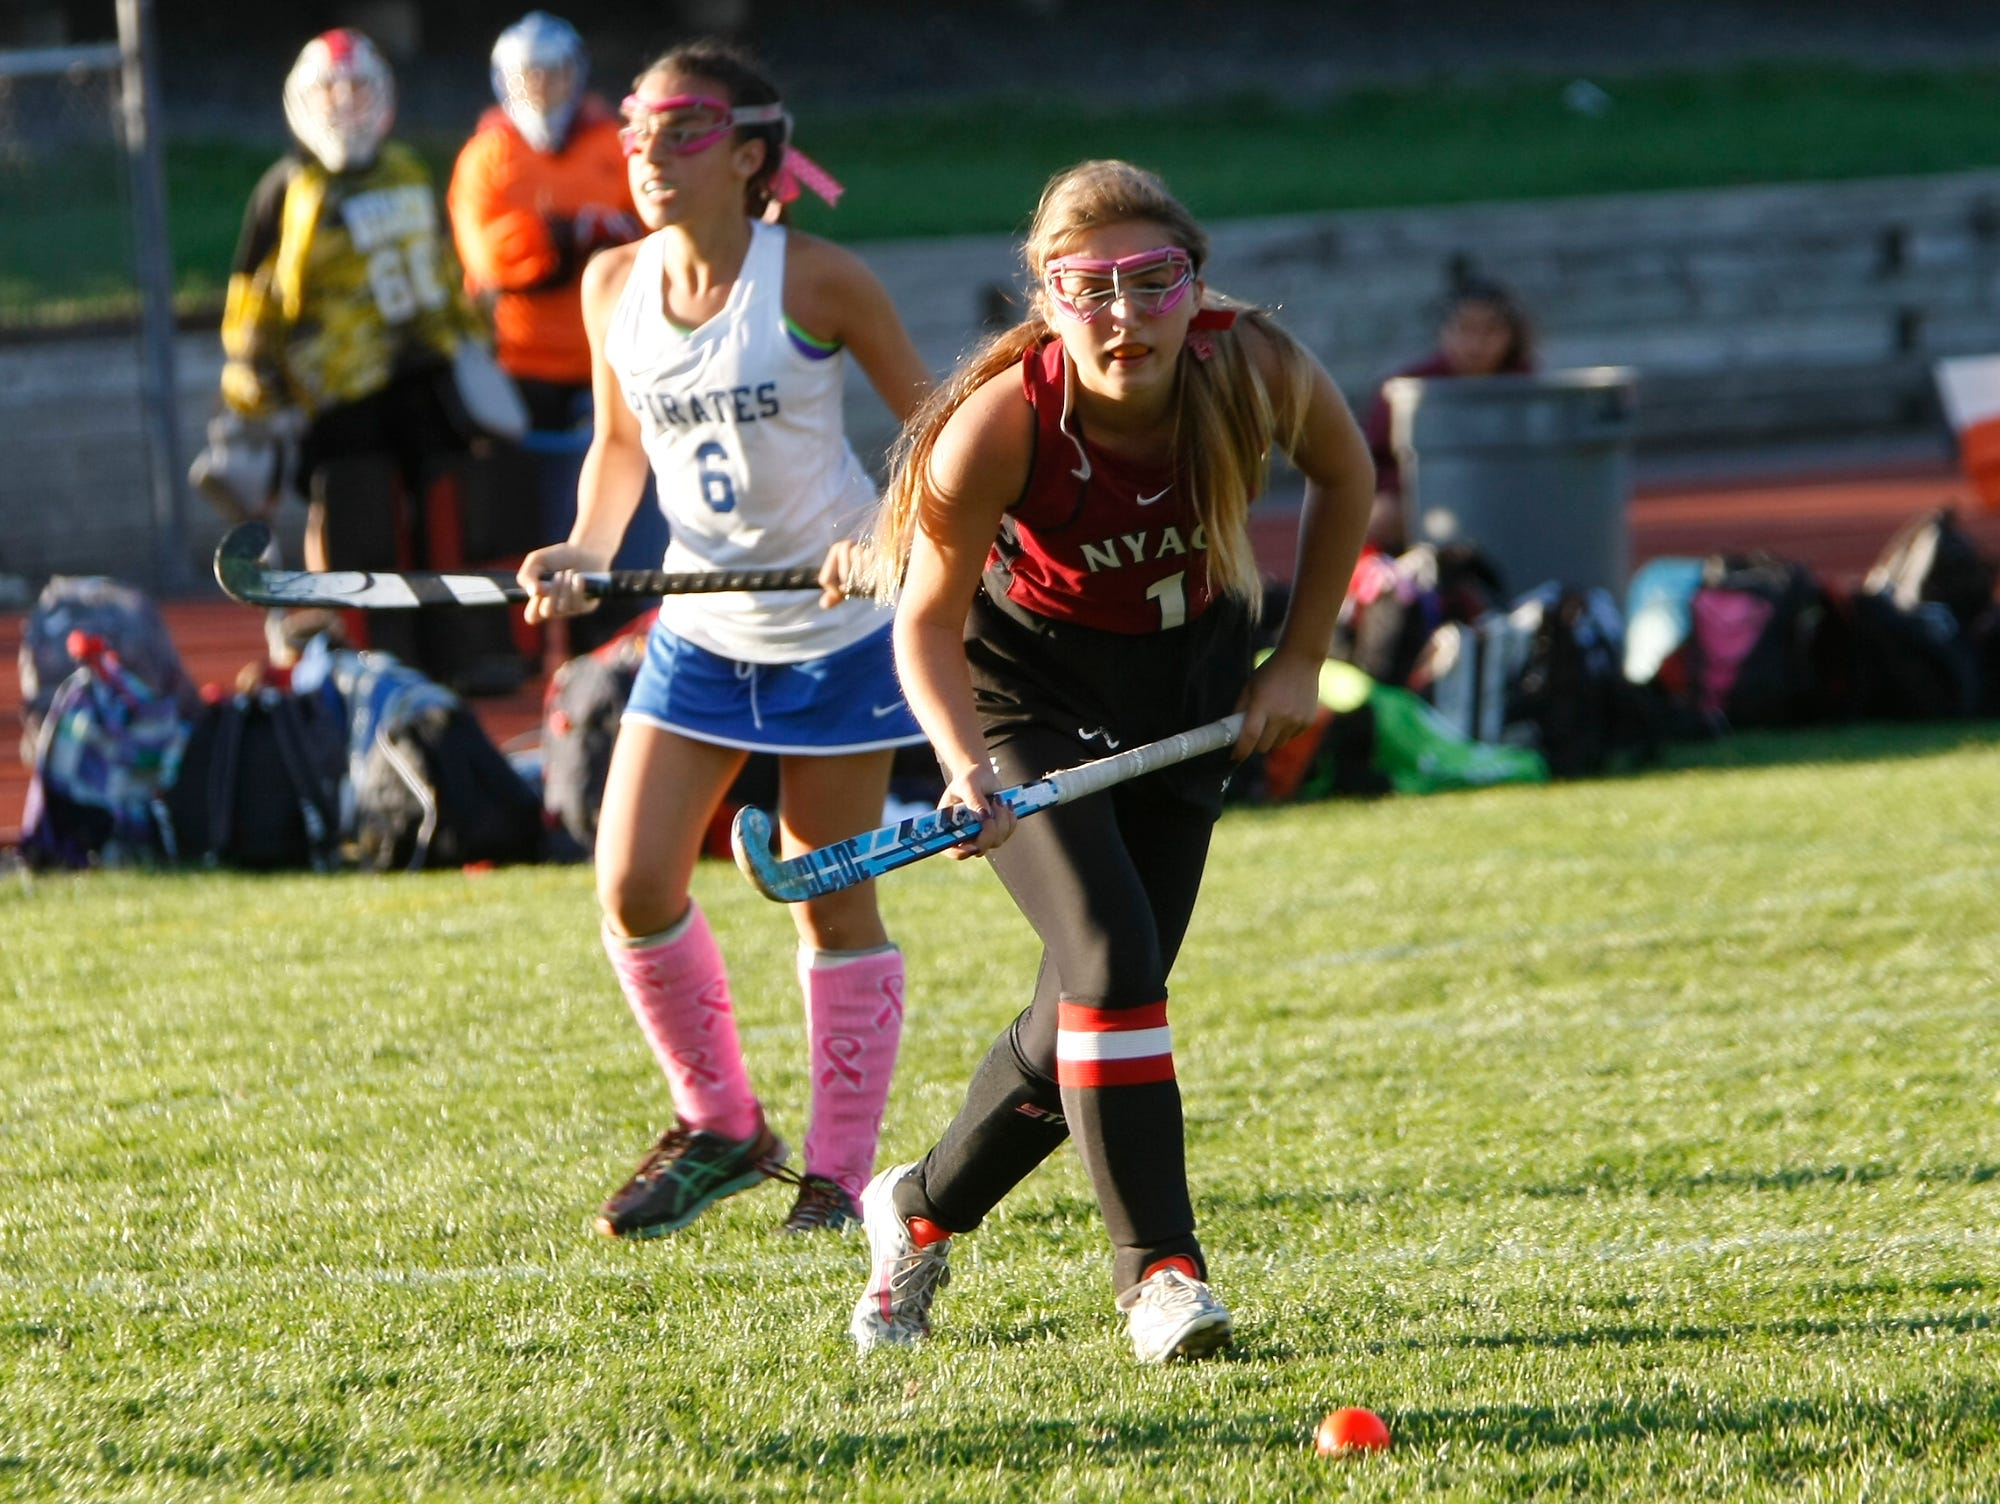 Nyack's Alyssa Varman (1) sets up a shot during a varsity field hockey game at Pearl River High School on Friday, Oct. 16, 2015.